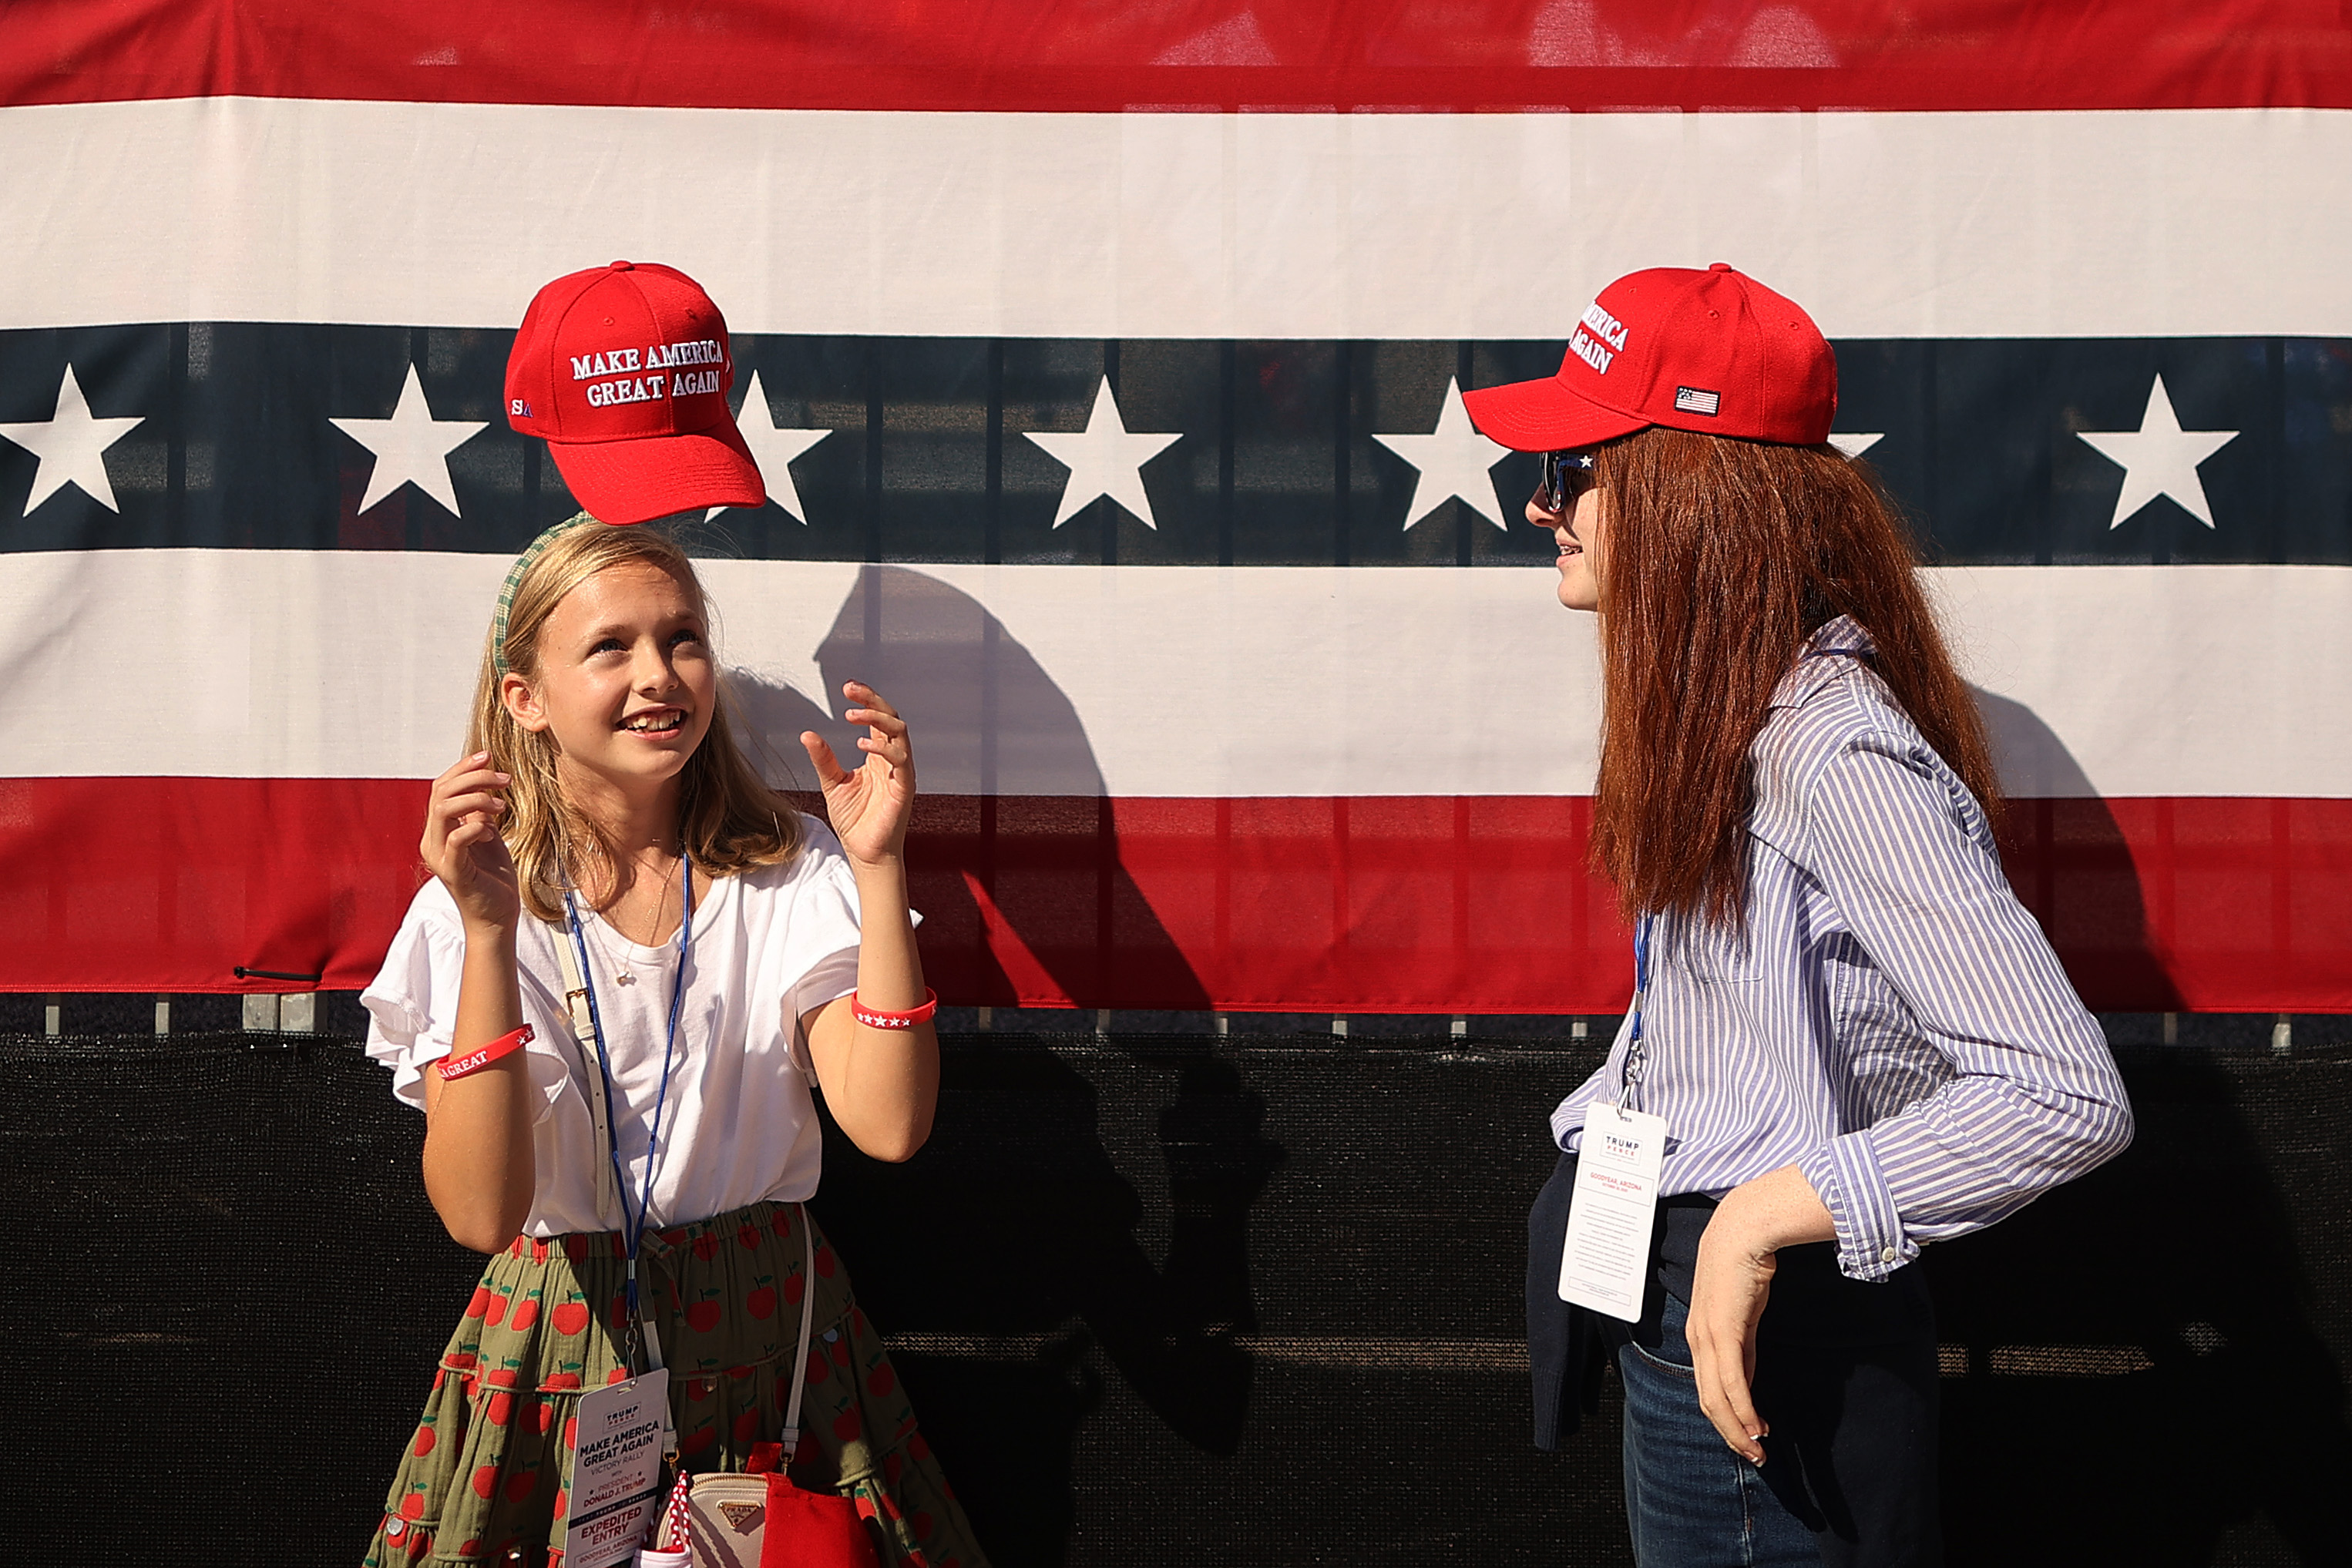 GOODYEAR, ARIZONA - OCTOBER 28: A girl tosses her Make America Great Again hat onto her head while waiting for the start of a campaign rally with U.S. President Donald Trump at Phoenix Goodyear Airport October 28, 2020 in Goodyear, Arizona. With less than a week until Election Day, Trump and his opponent, Democratic presidential nominee Joe Biden, are campaigning across the country. (Photo by Chip Somodevilla/Getty Images)